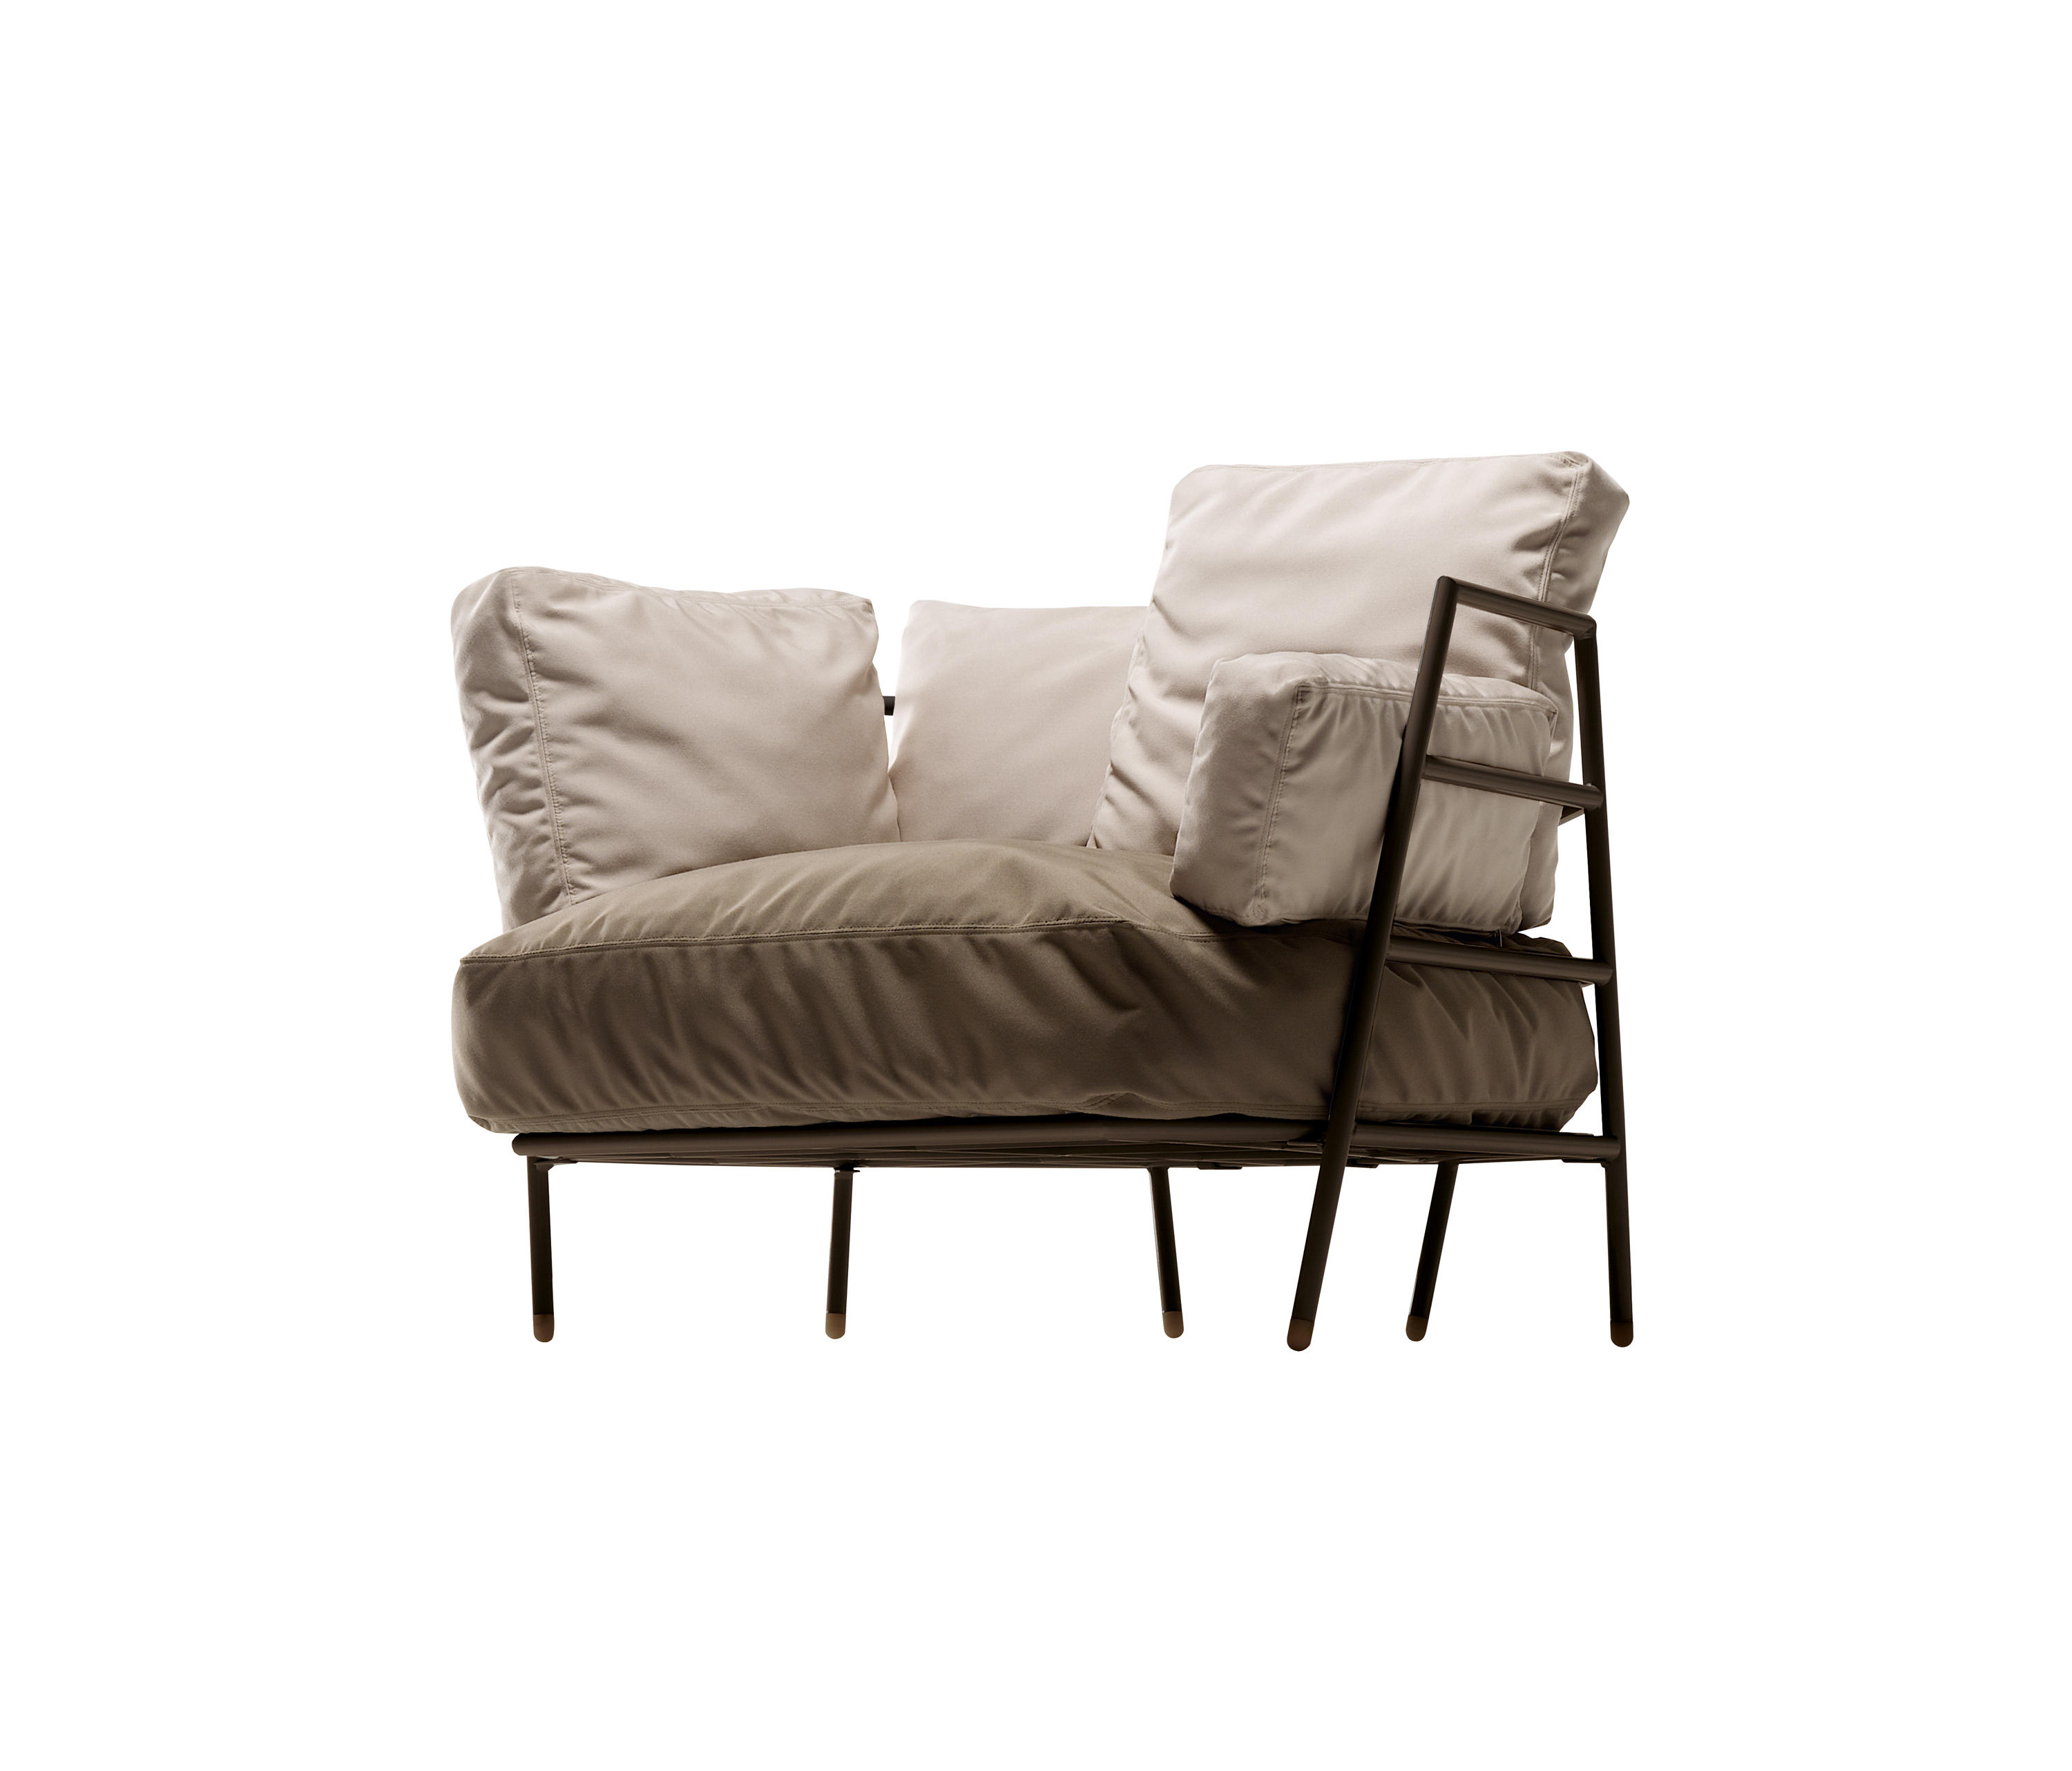 Dehors Outdoor Armchair 370 By Alias | Armchairs ...